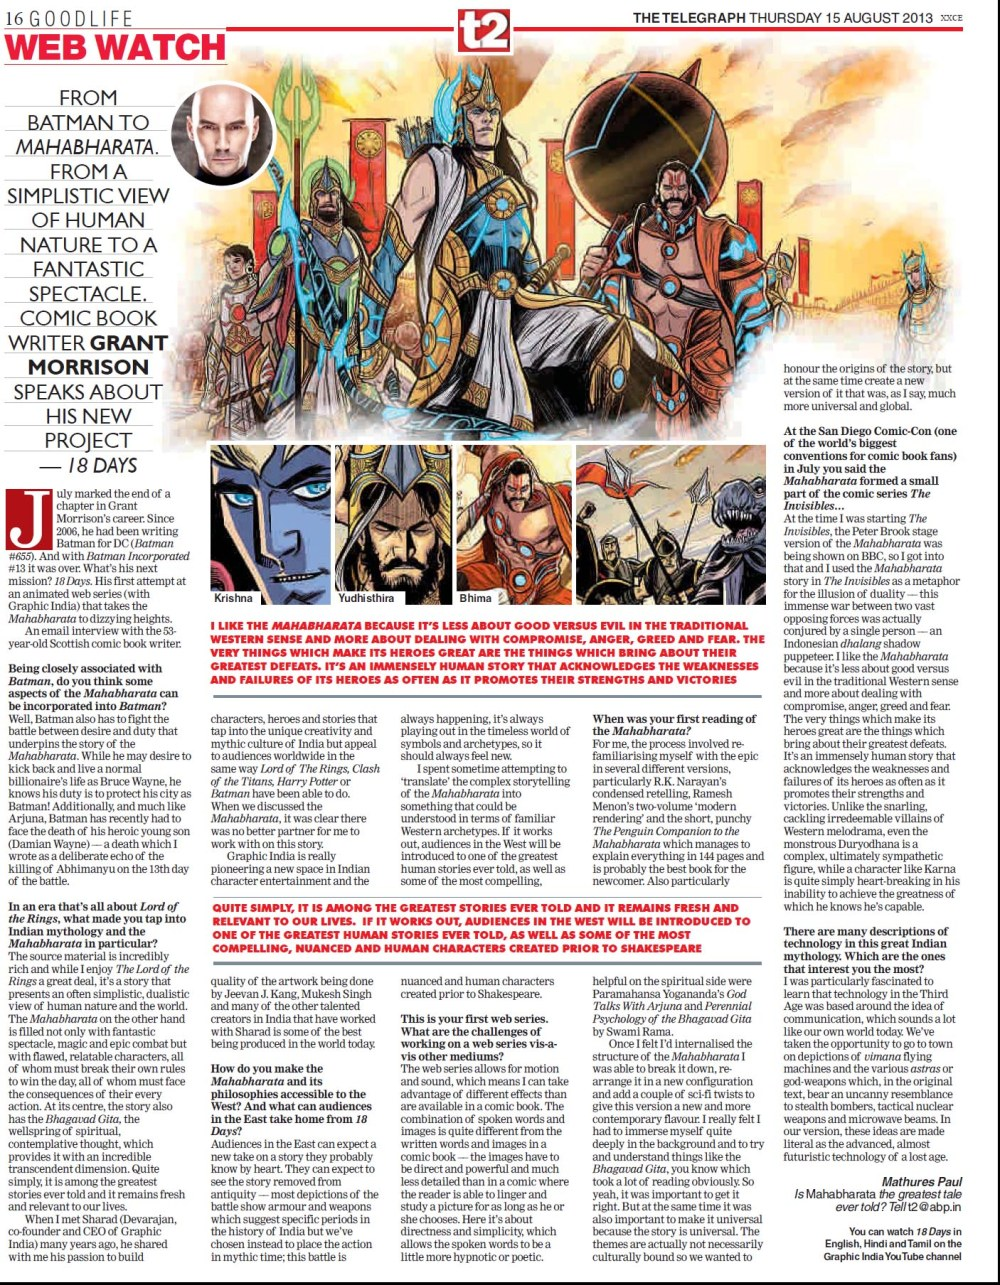 The Telegraph T2 Kol p16 d16.8 Graphic India